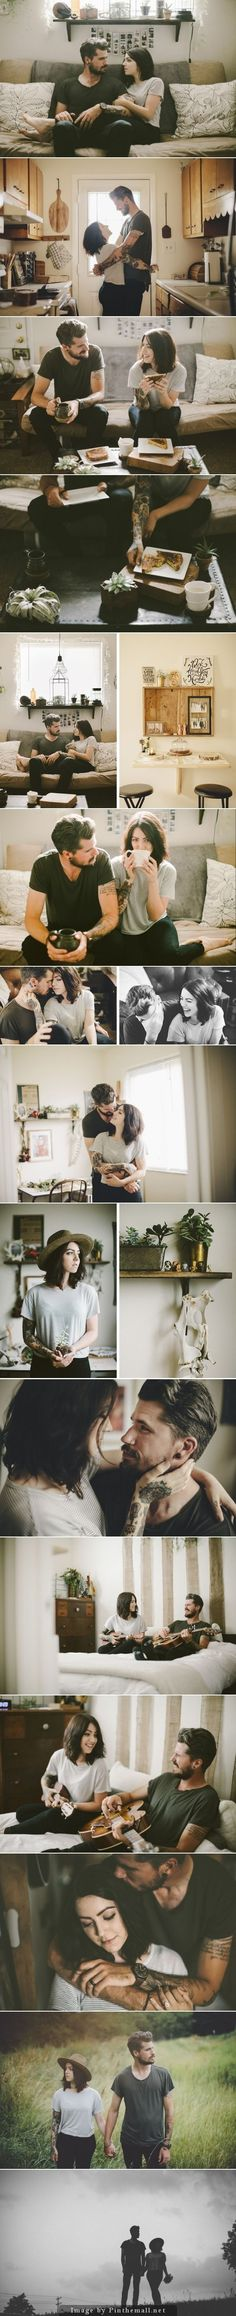 Peek into the life of. Couple portraits that capture the story of them.